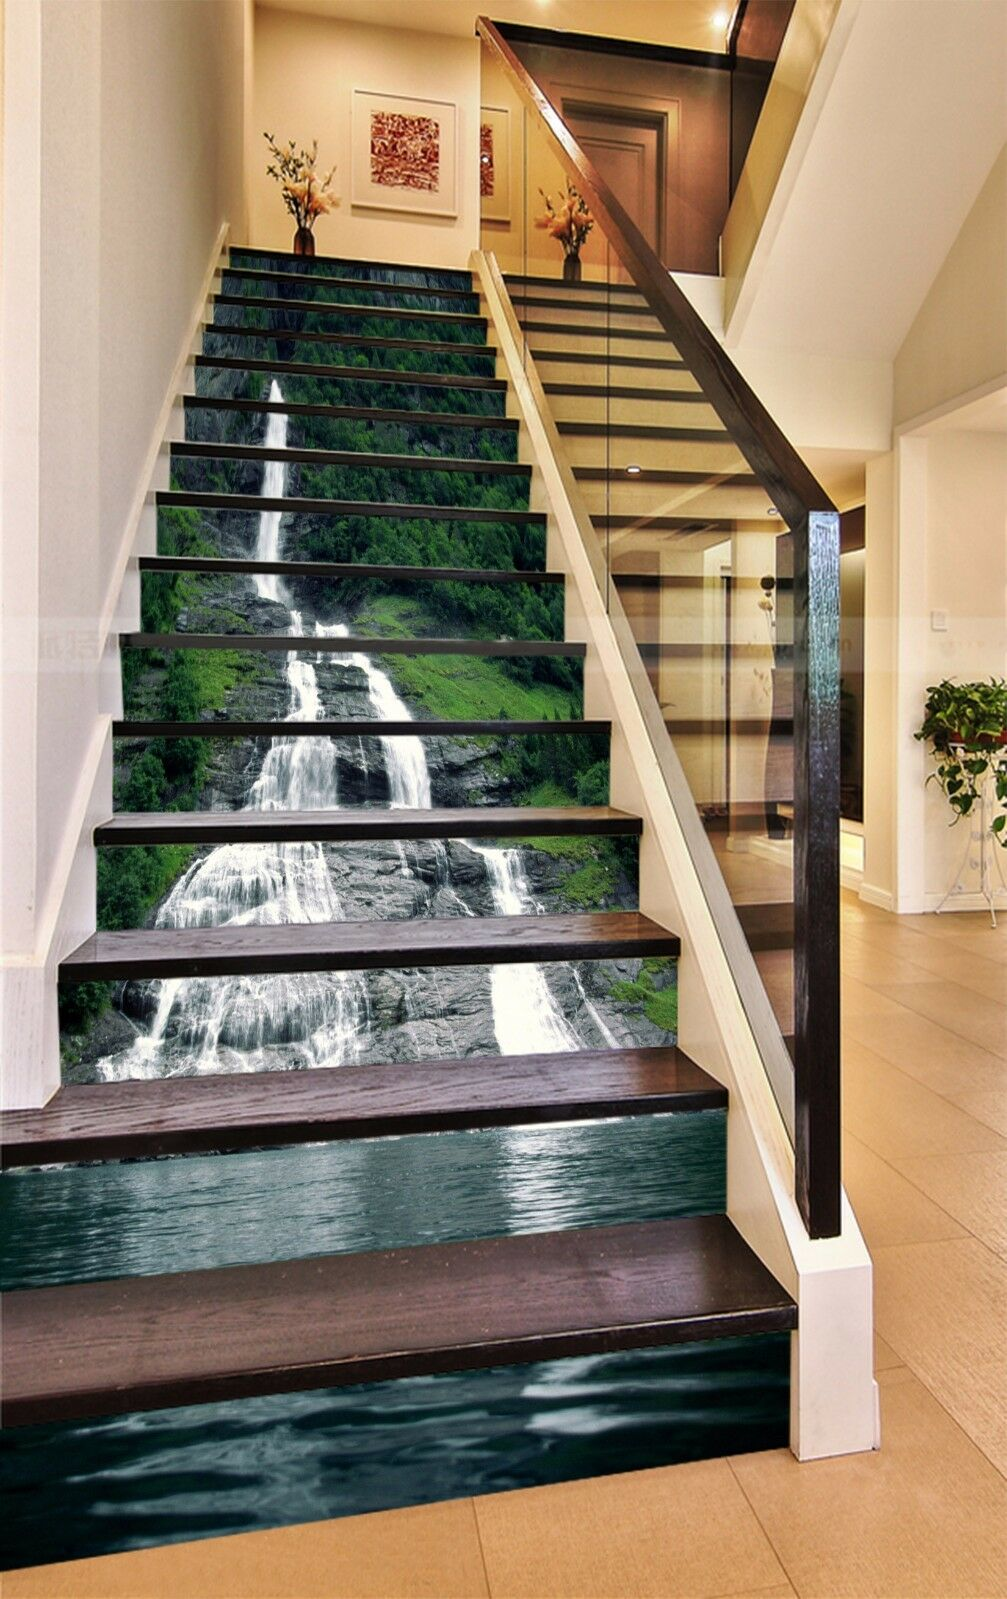 3D Waterfall Lake 73Stair Risers Decoration Photo Mural Vinyl Decal Wallpaper AU